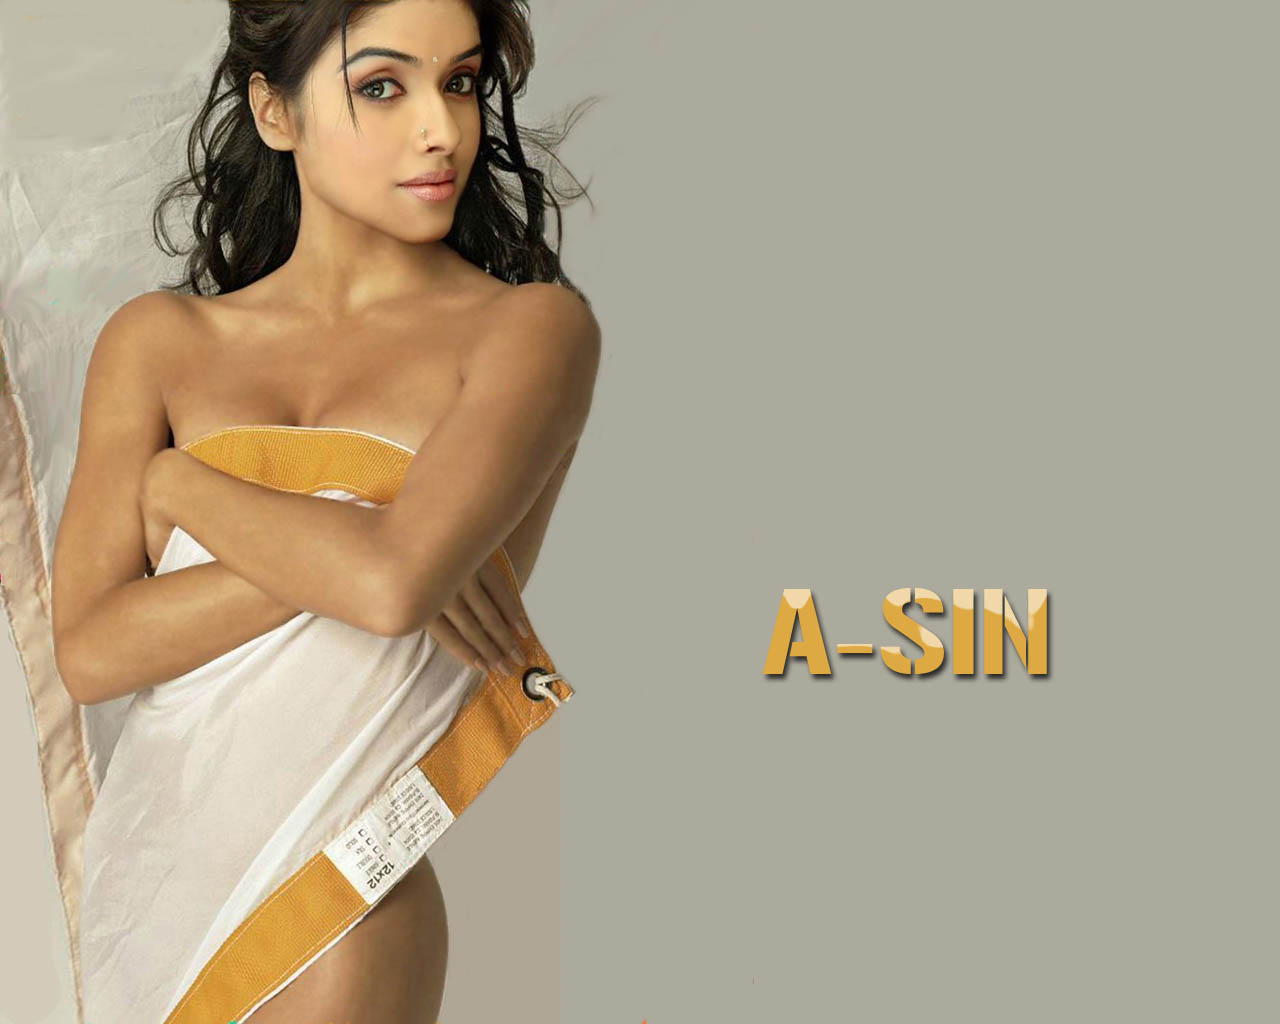 Tamil Actress Asin Hot Gallery - Photo Gallery